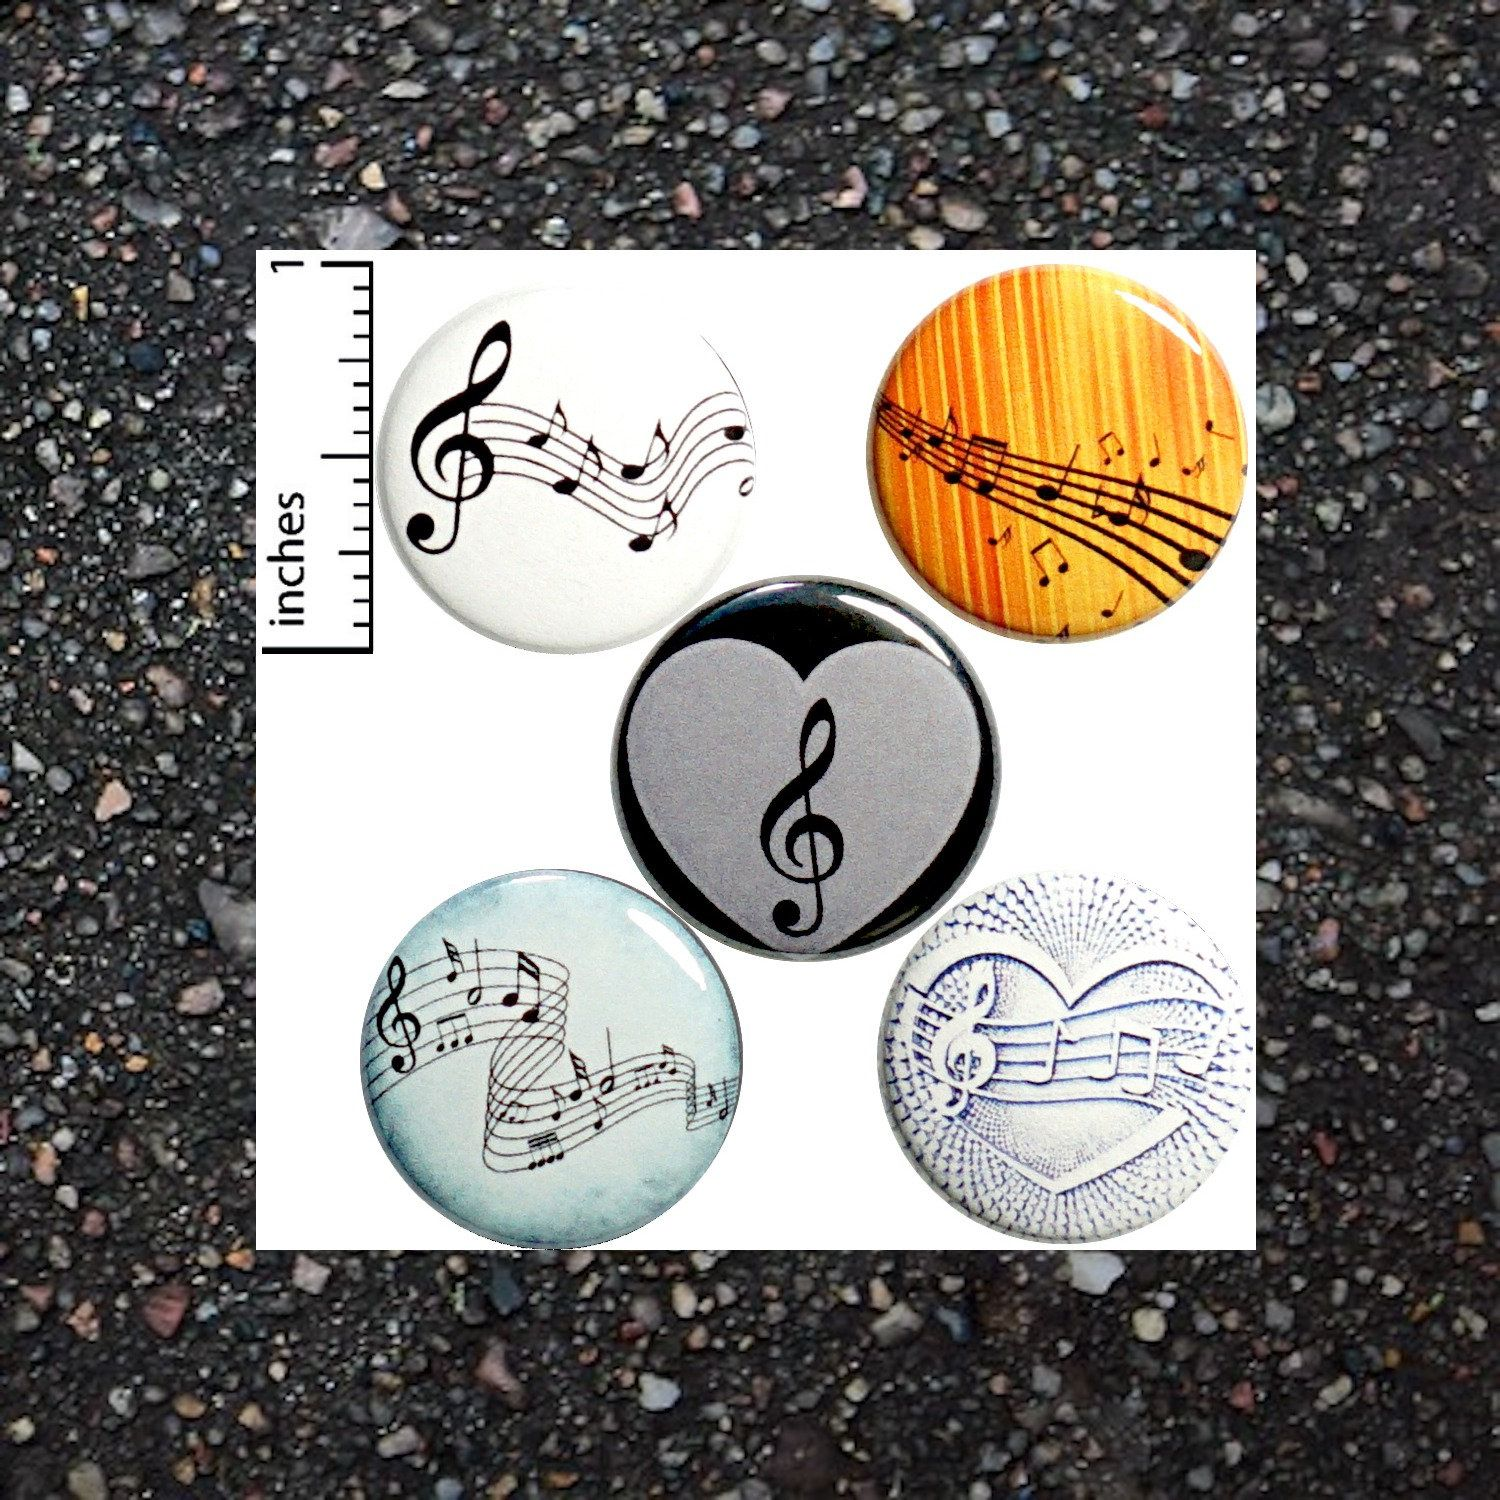 Music Buttons For Backpacks Pins Badges Pinbacks Or Fridge Magnets Sheet Music Classical Notes 1 Inch 5 Pack Gift Set P2 In 2020 Music Buttons Backpack Pins Pin Badges